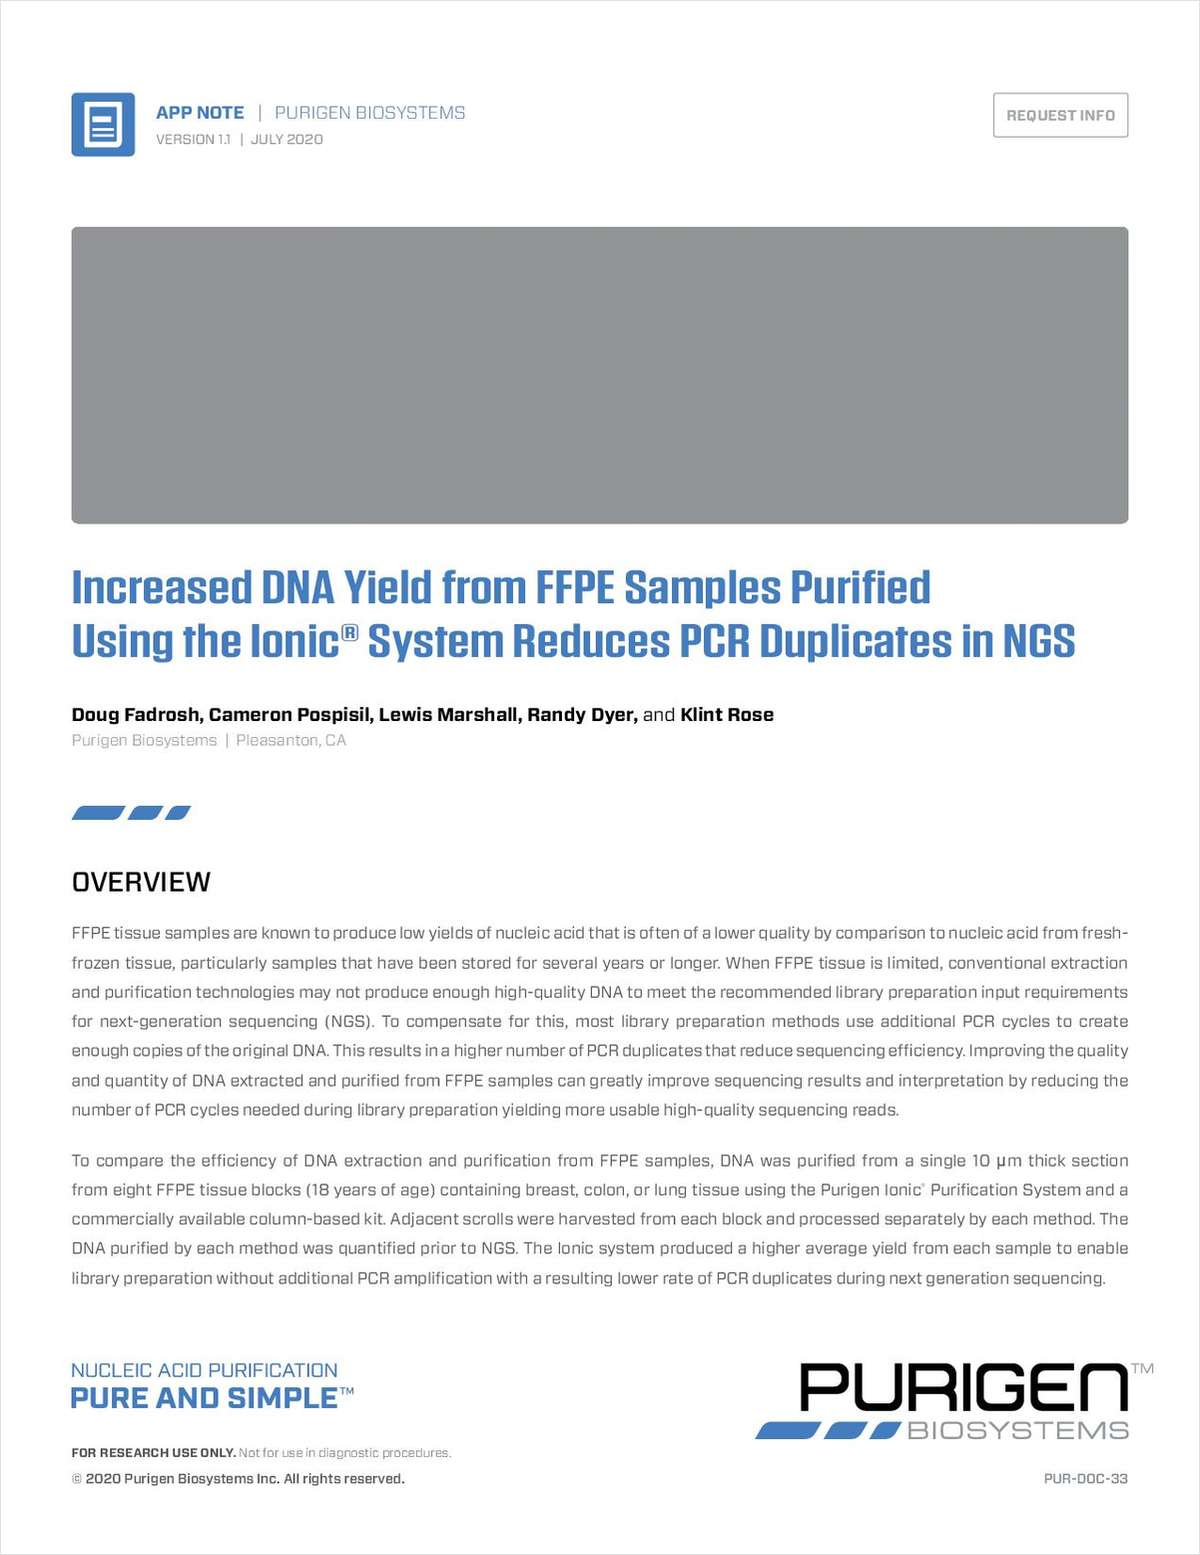 Increased DNA Yield and Reduced PCR Duplicates Using the Ionic System